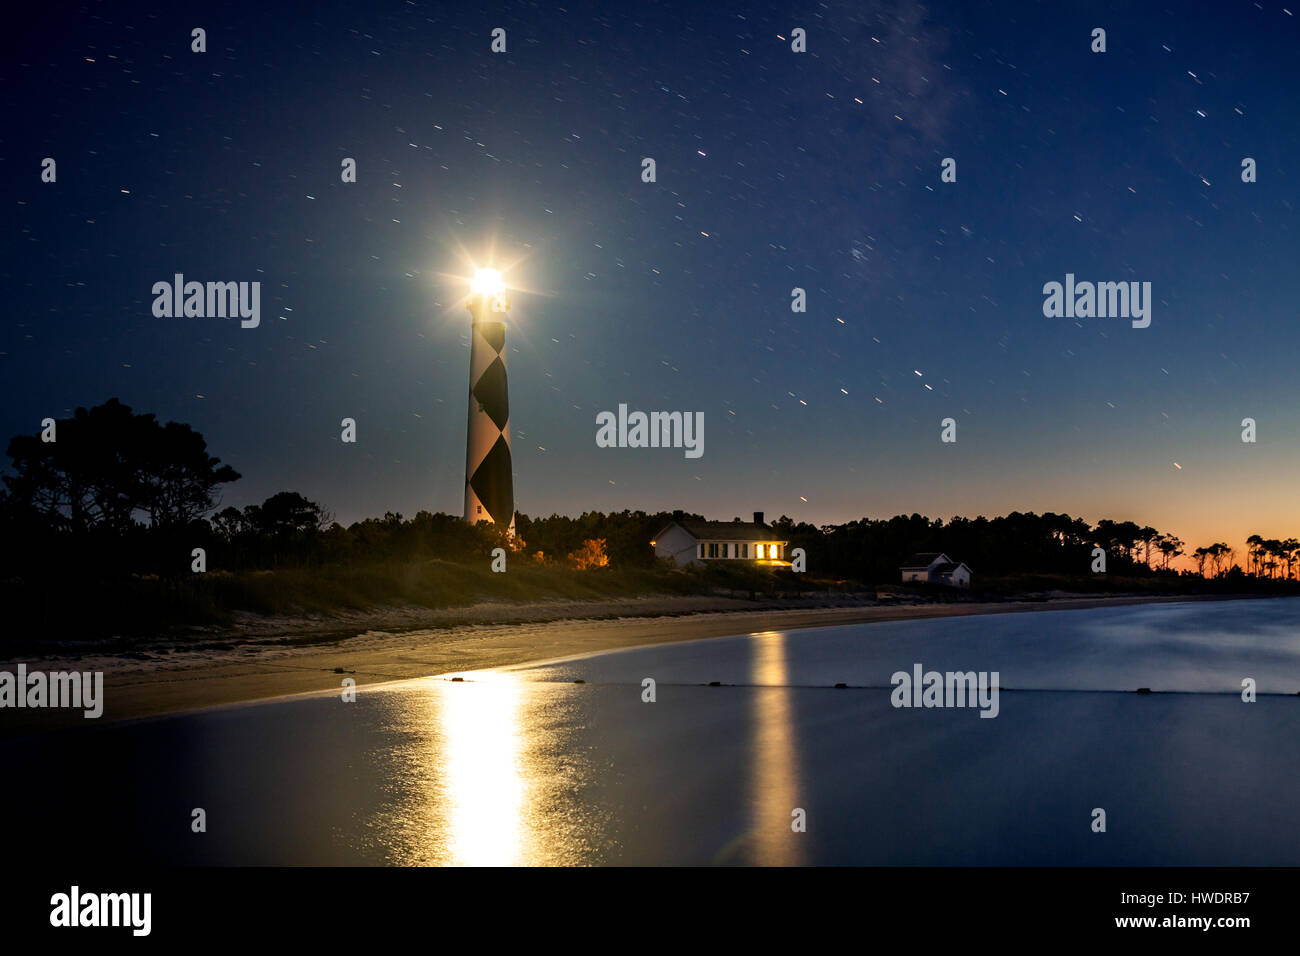 NC00882-00...NORTH CAROLINA - Cape Lookout Lighthouse and Keepers House in Cape Lookout National Seashore reflected - Stock Image